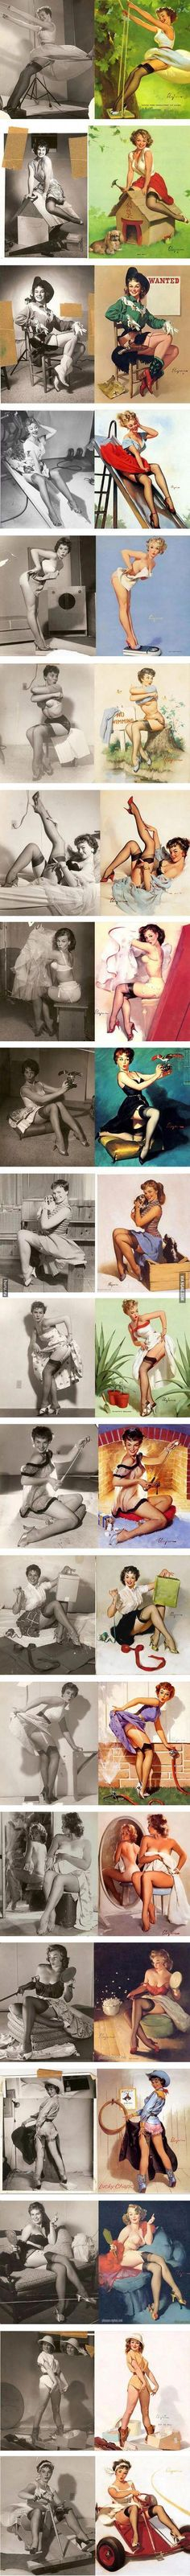 Before Photoshop there was pinup art. VISIT FOR MORE Before Photoshop there was pinup art. The post Before Photoshop there was pinup art. appeared first on Fotografie. Pin Ups Vintage, Vintage Art, Vintage Drawing, Dress Vintage, Retro Pin Up, Pinup Art, Pin Up Girls, Modelos Pin Up, Dibujos Pin Up